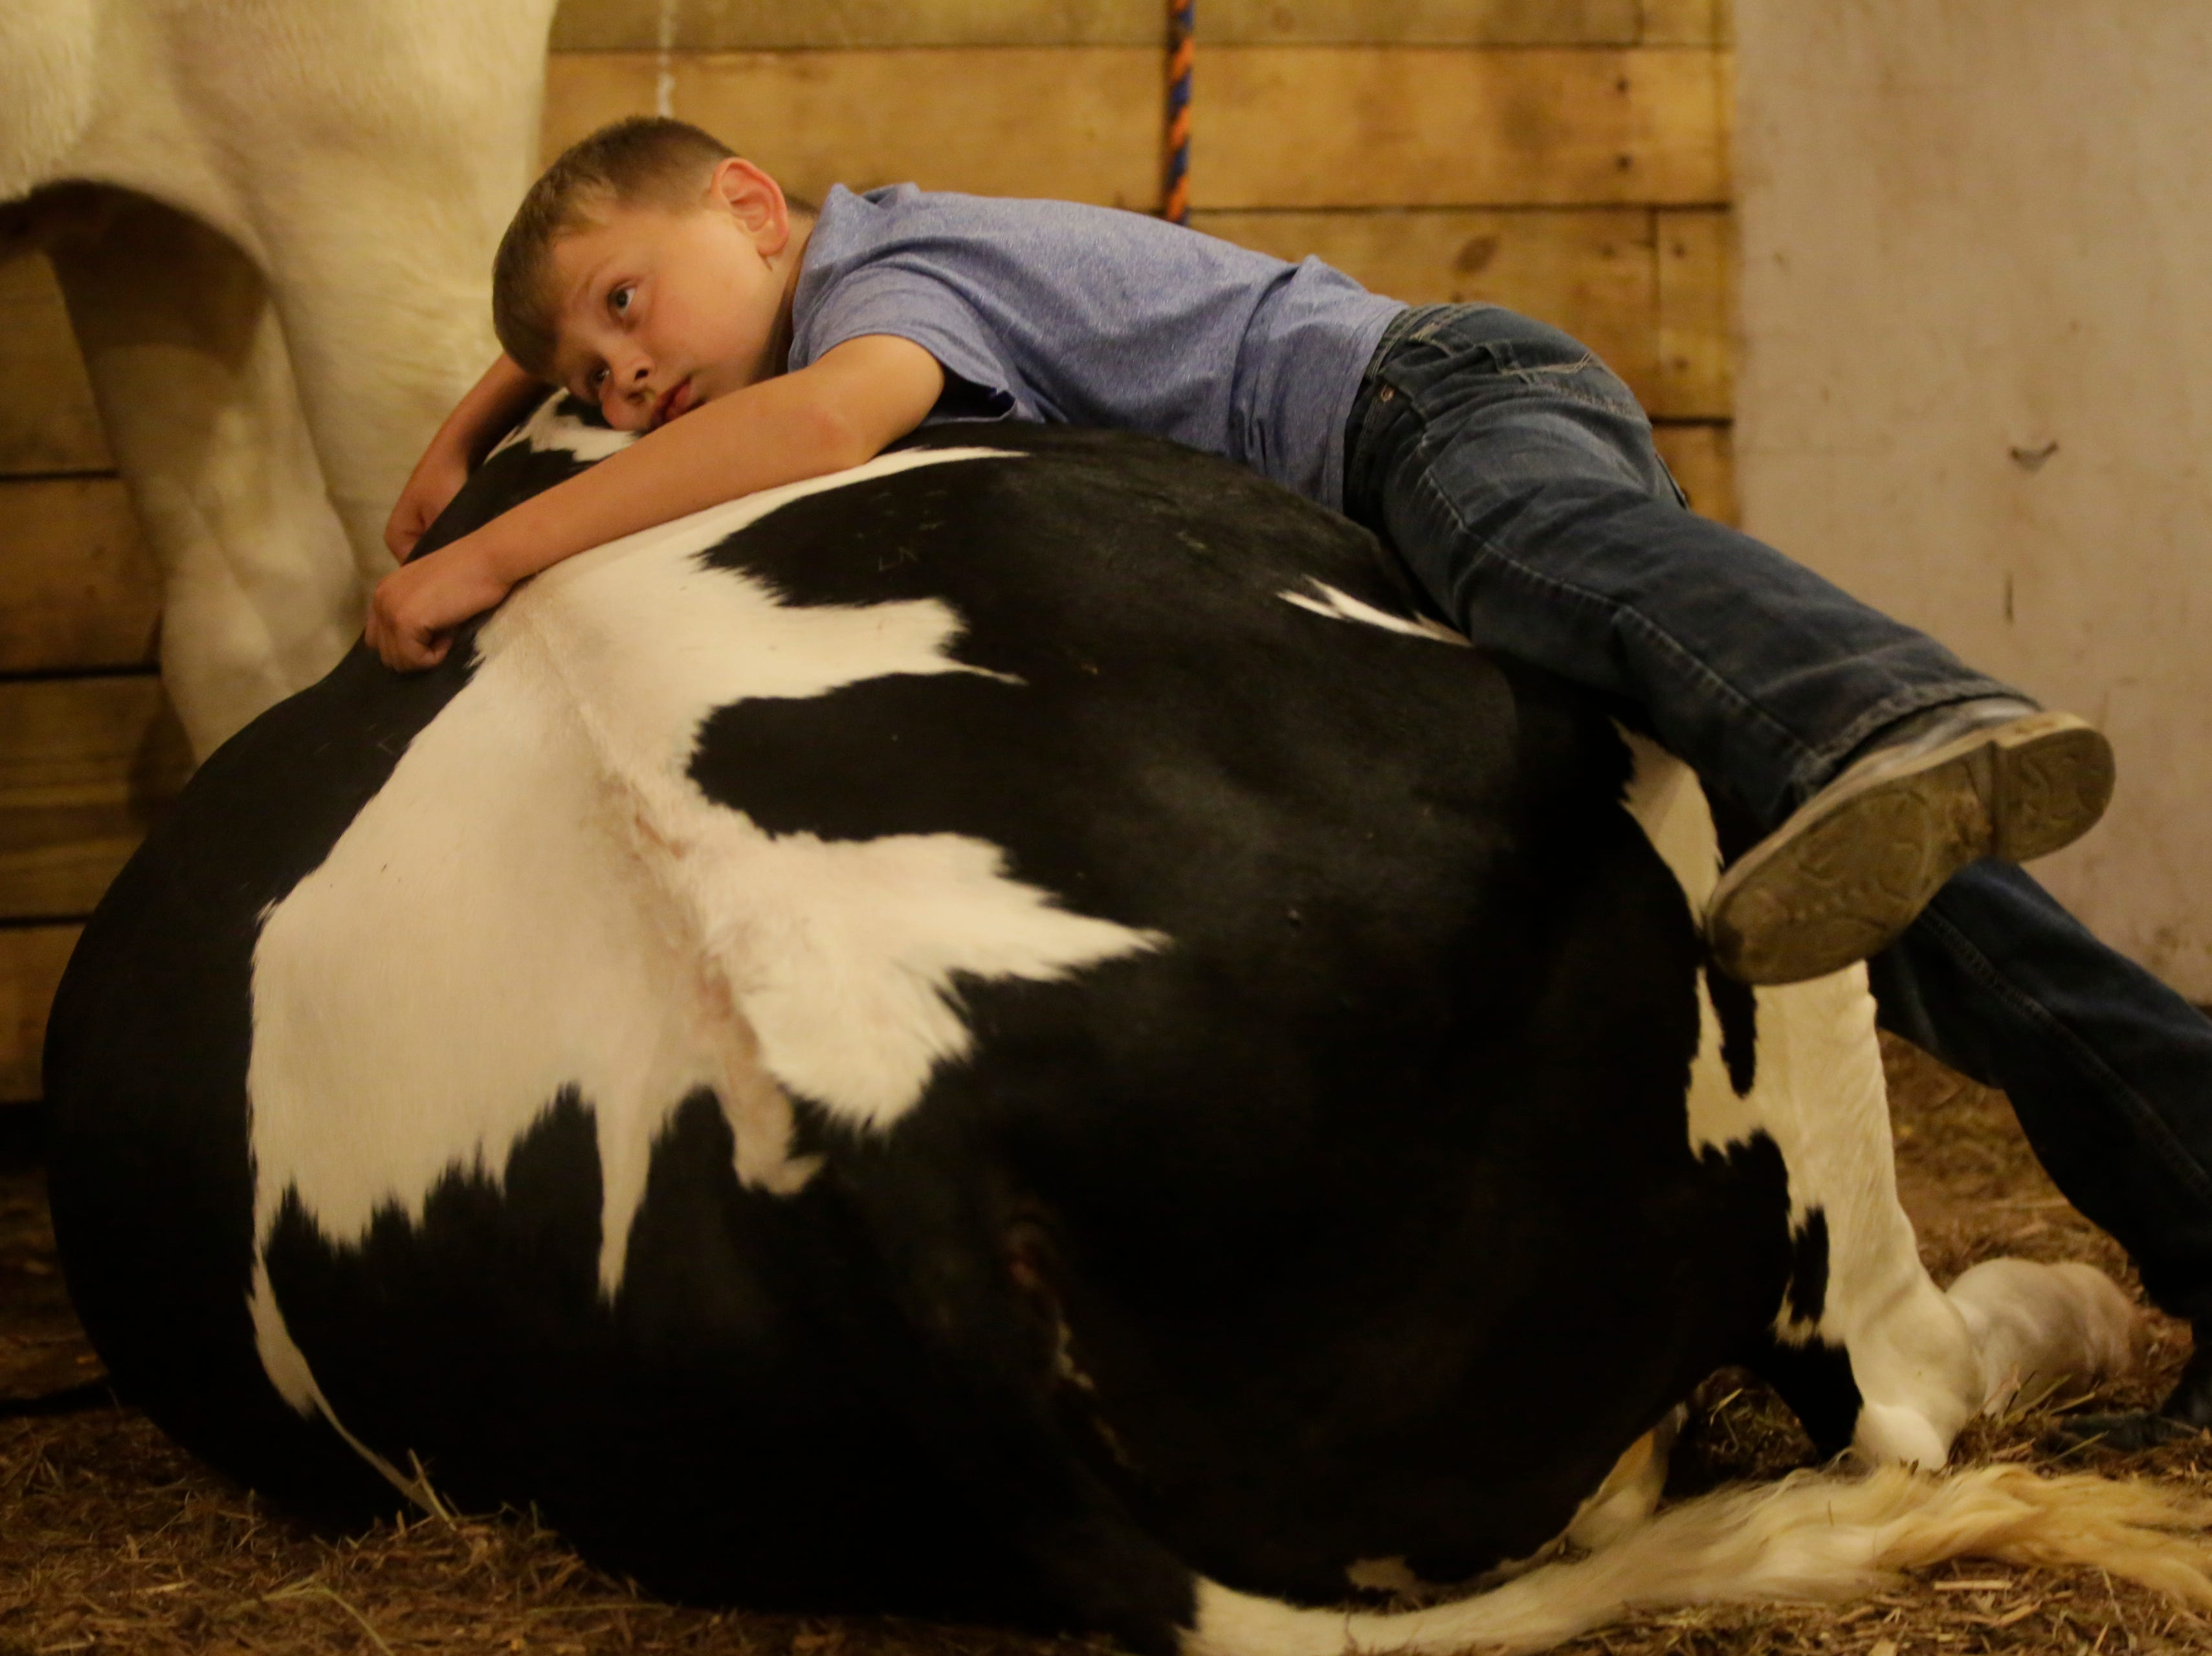 """""""I think he will miss me and his other friends,"""" said Harland Meissner, 9, while sharing some last moments with Brain-ee, after the cow was purchased by Chili Implements earlier in the night during the market animal show at the Central Wisconsin State Fair in Marshfield Wednesday, August 22, 2018."""